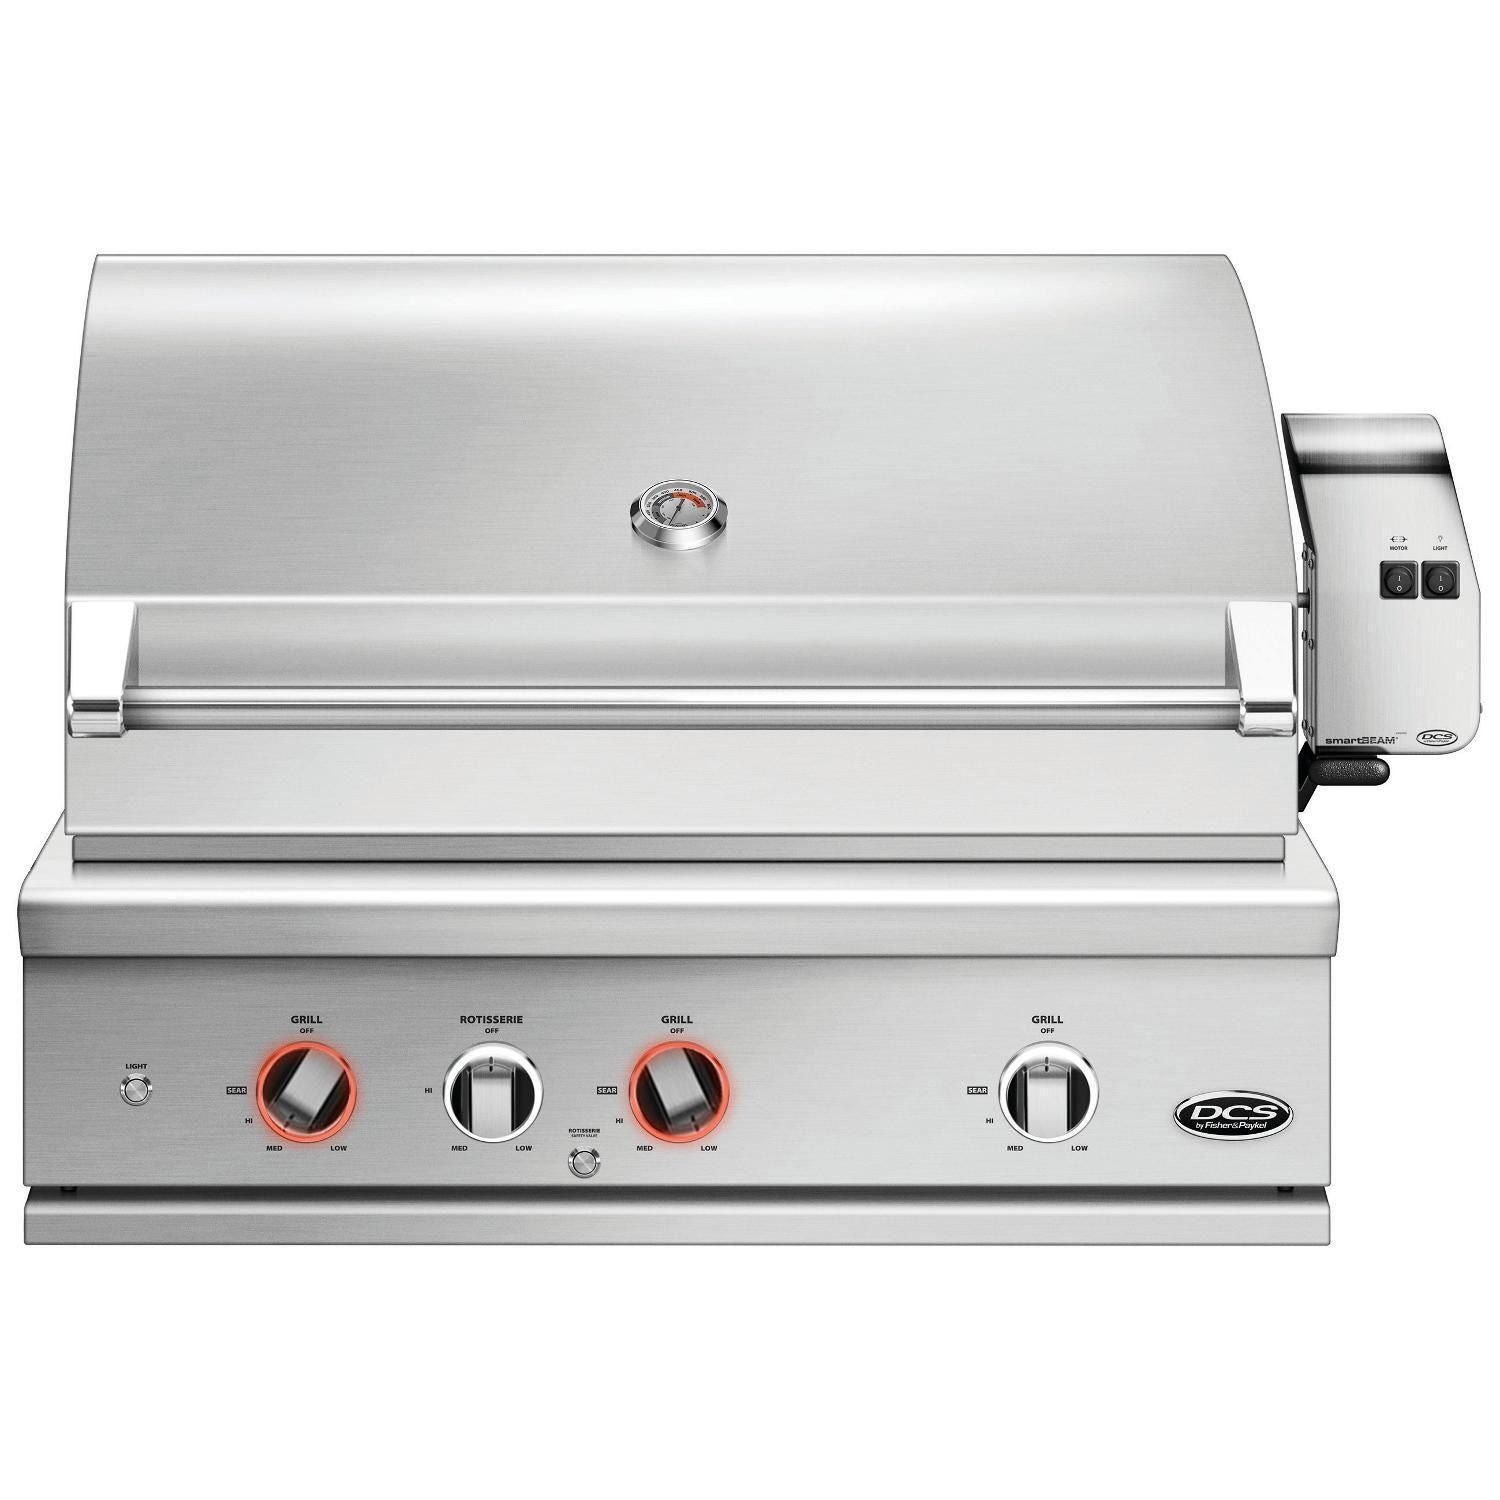 Dcs Series 9 Evolution 36 Inch Built In Natural Gas Grill With Rotisserie Be1 36rc N Bbqguys In 2020 Built In Gas Grills Gas Grill Built In Grill